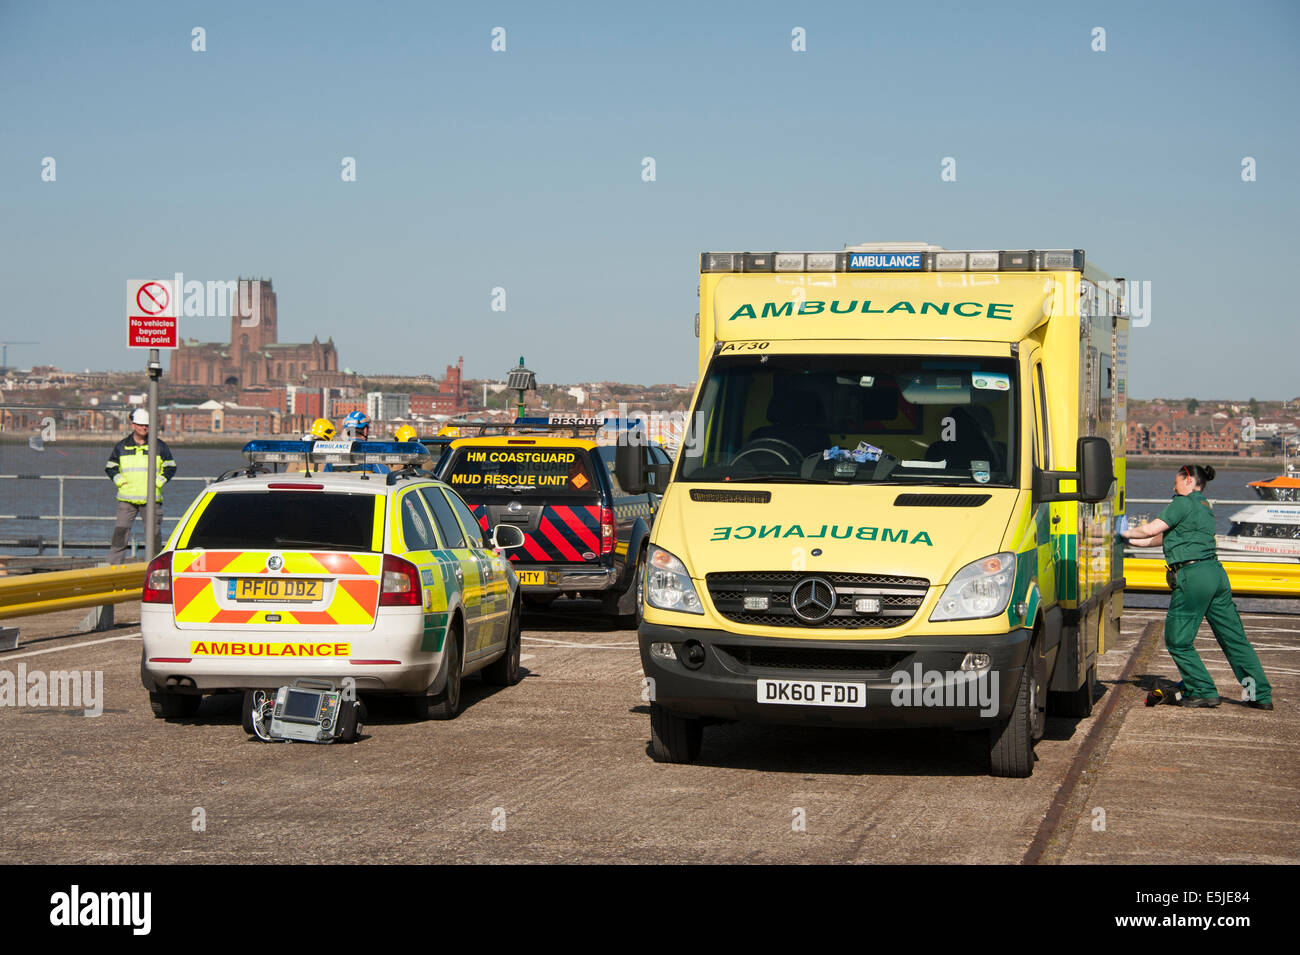 Ambulance RRV Paramedic Fast Response Car Water - Stock Image